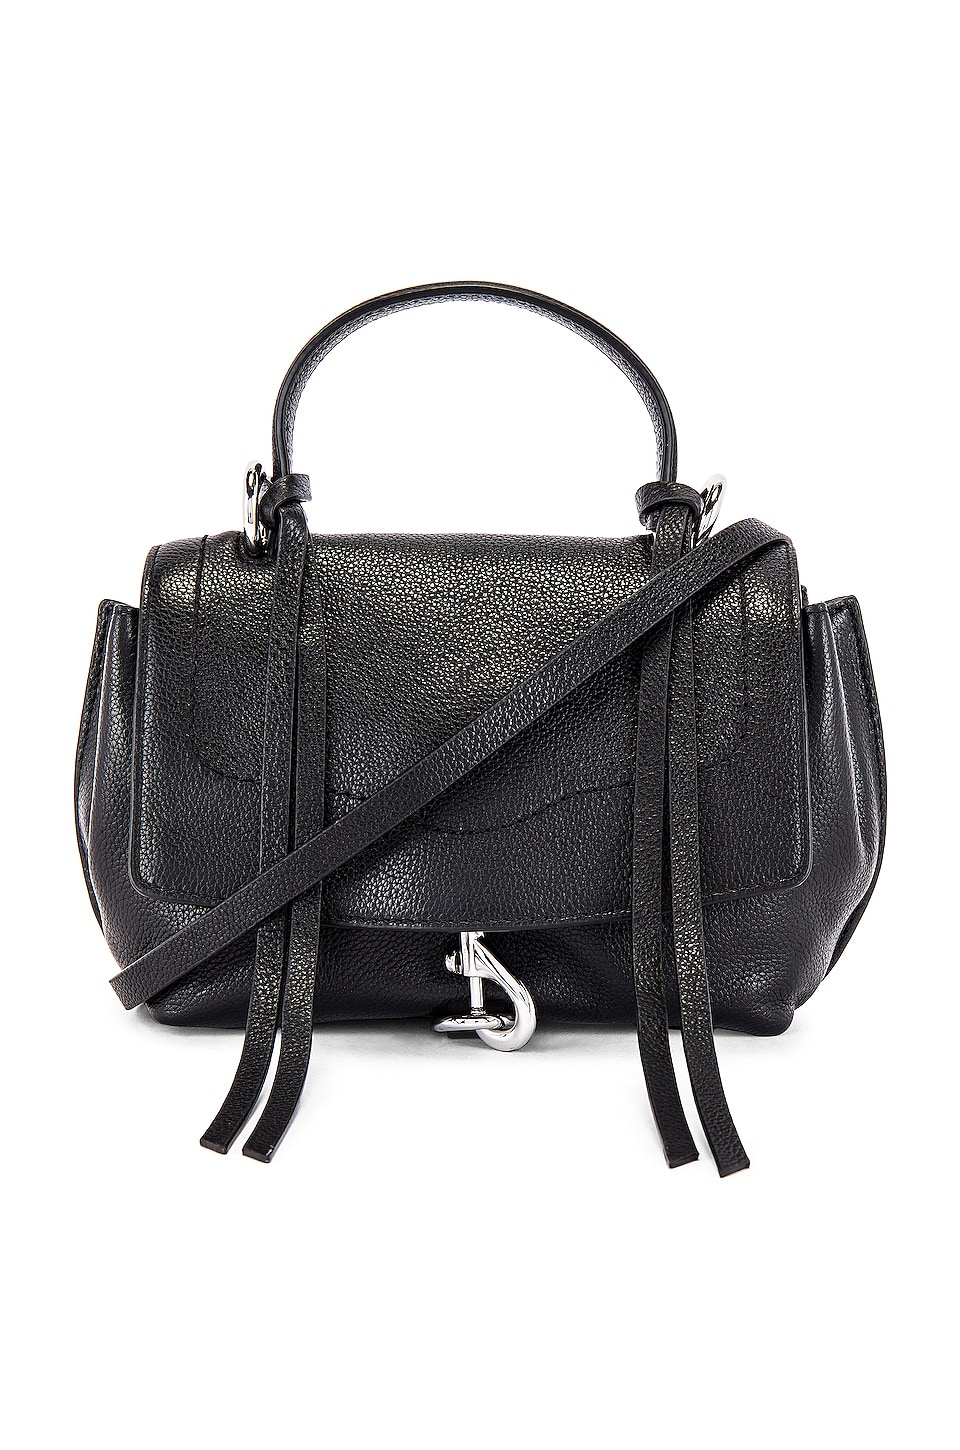 Rebecca Minkoff Stella Mini Flap Satchel in Black